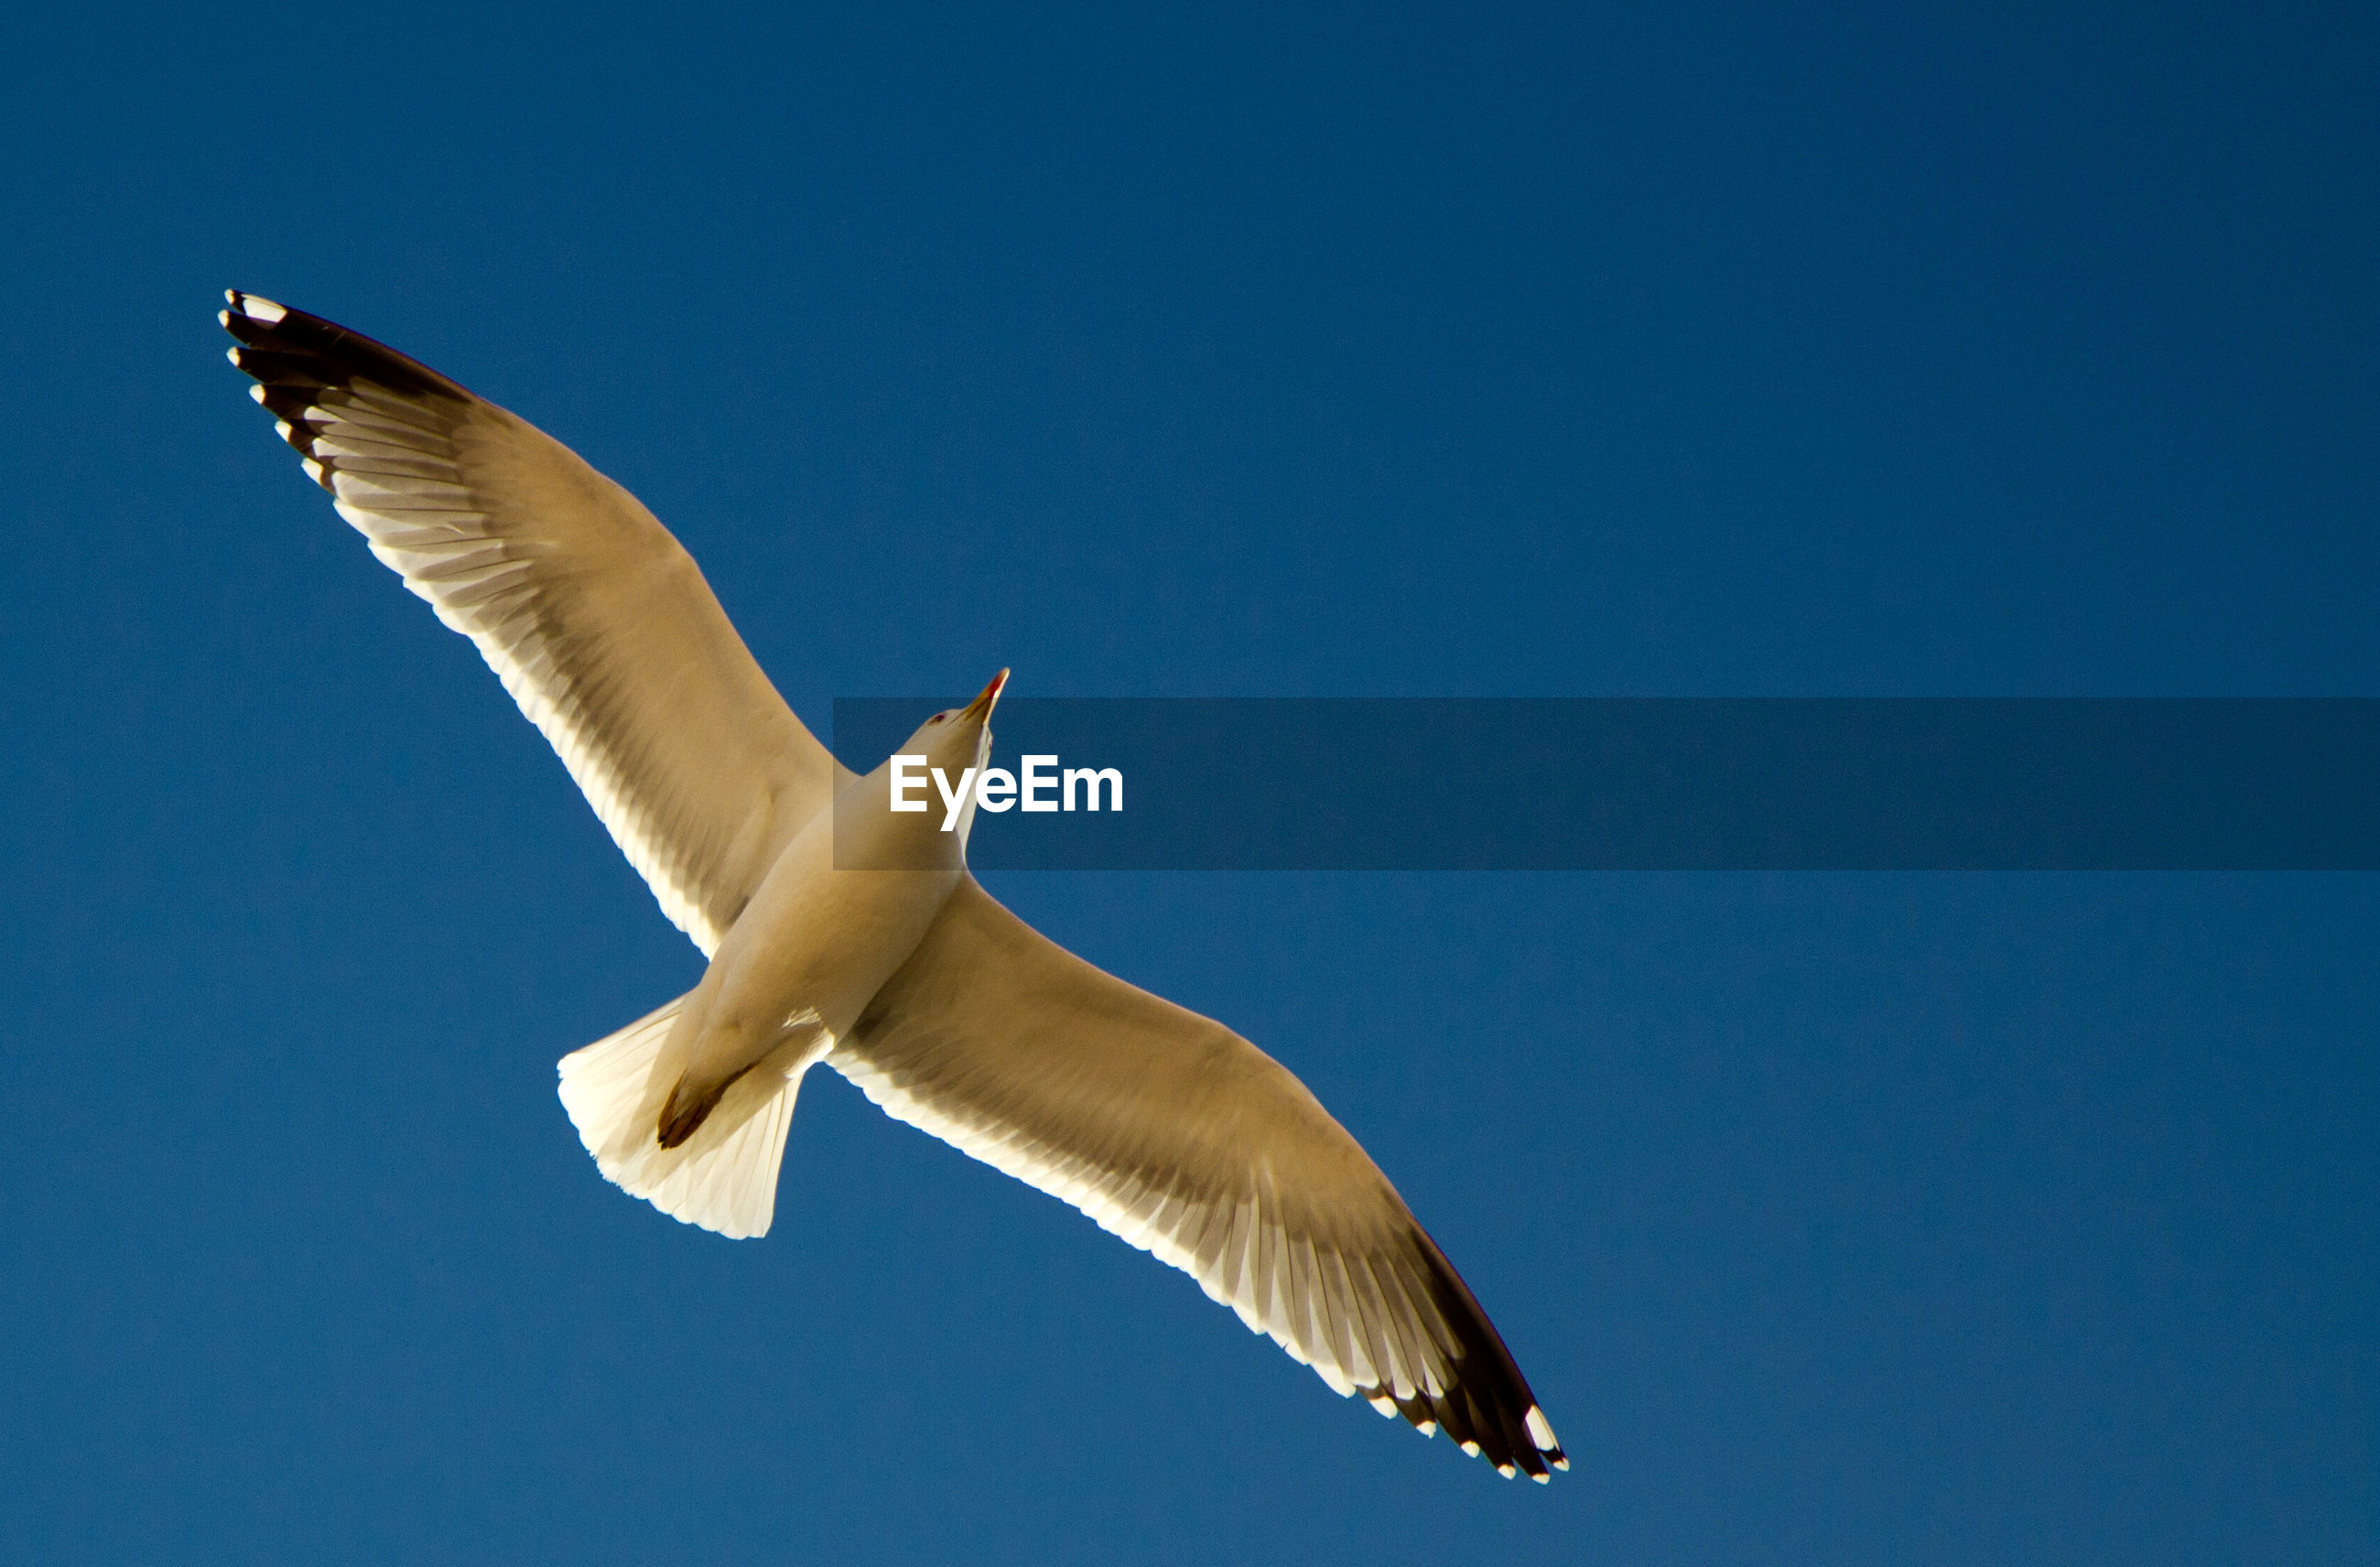 Directly below view of seagull flying against clear blue sky